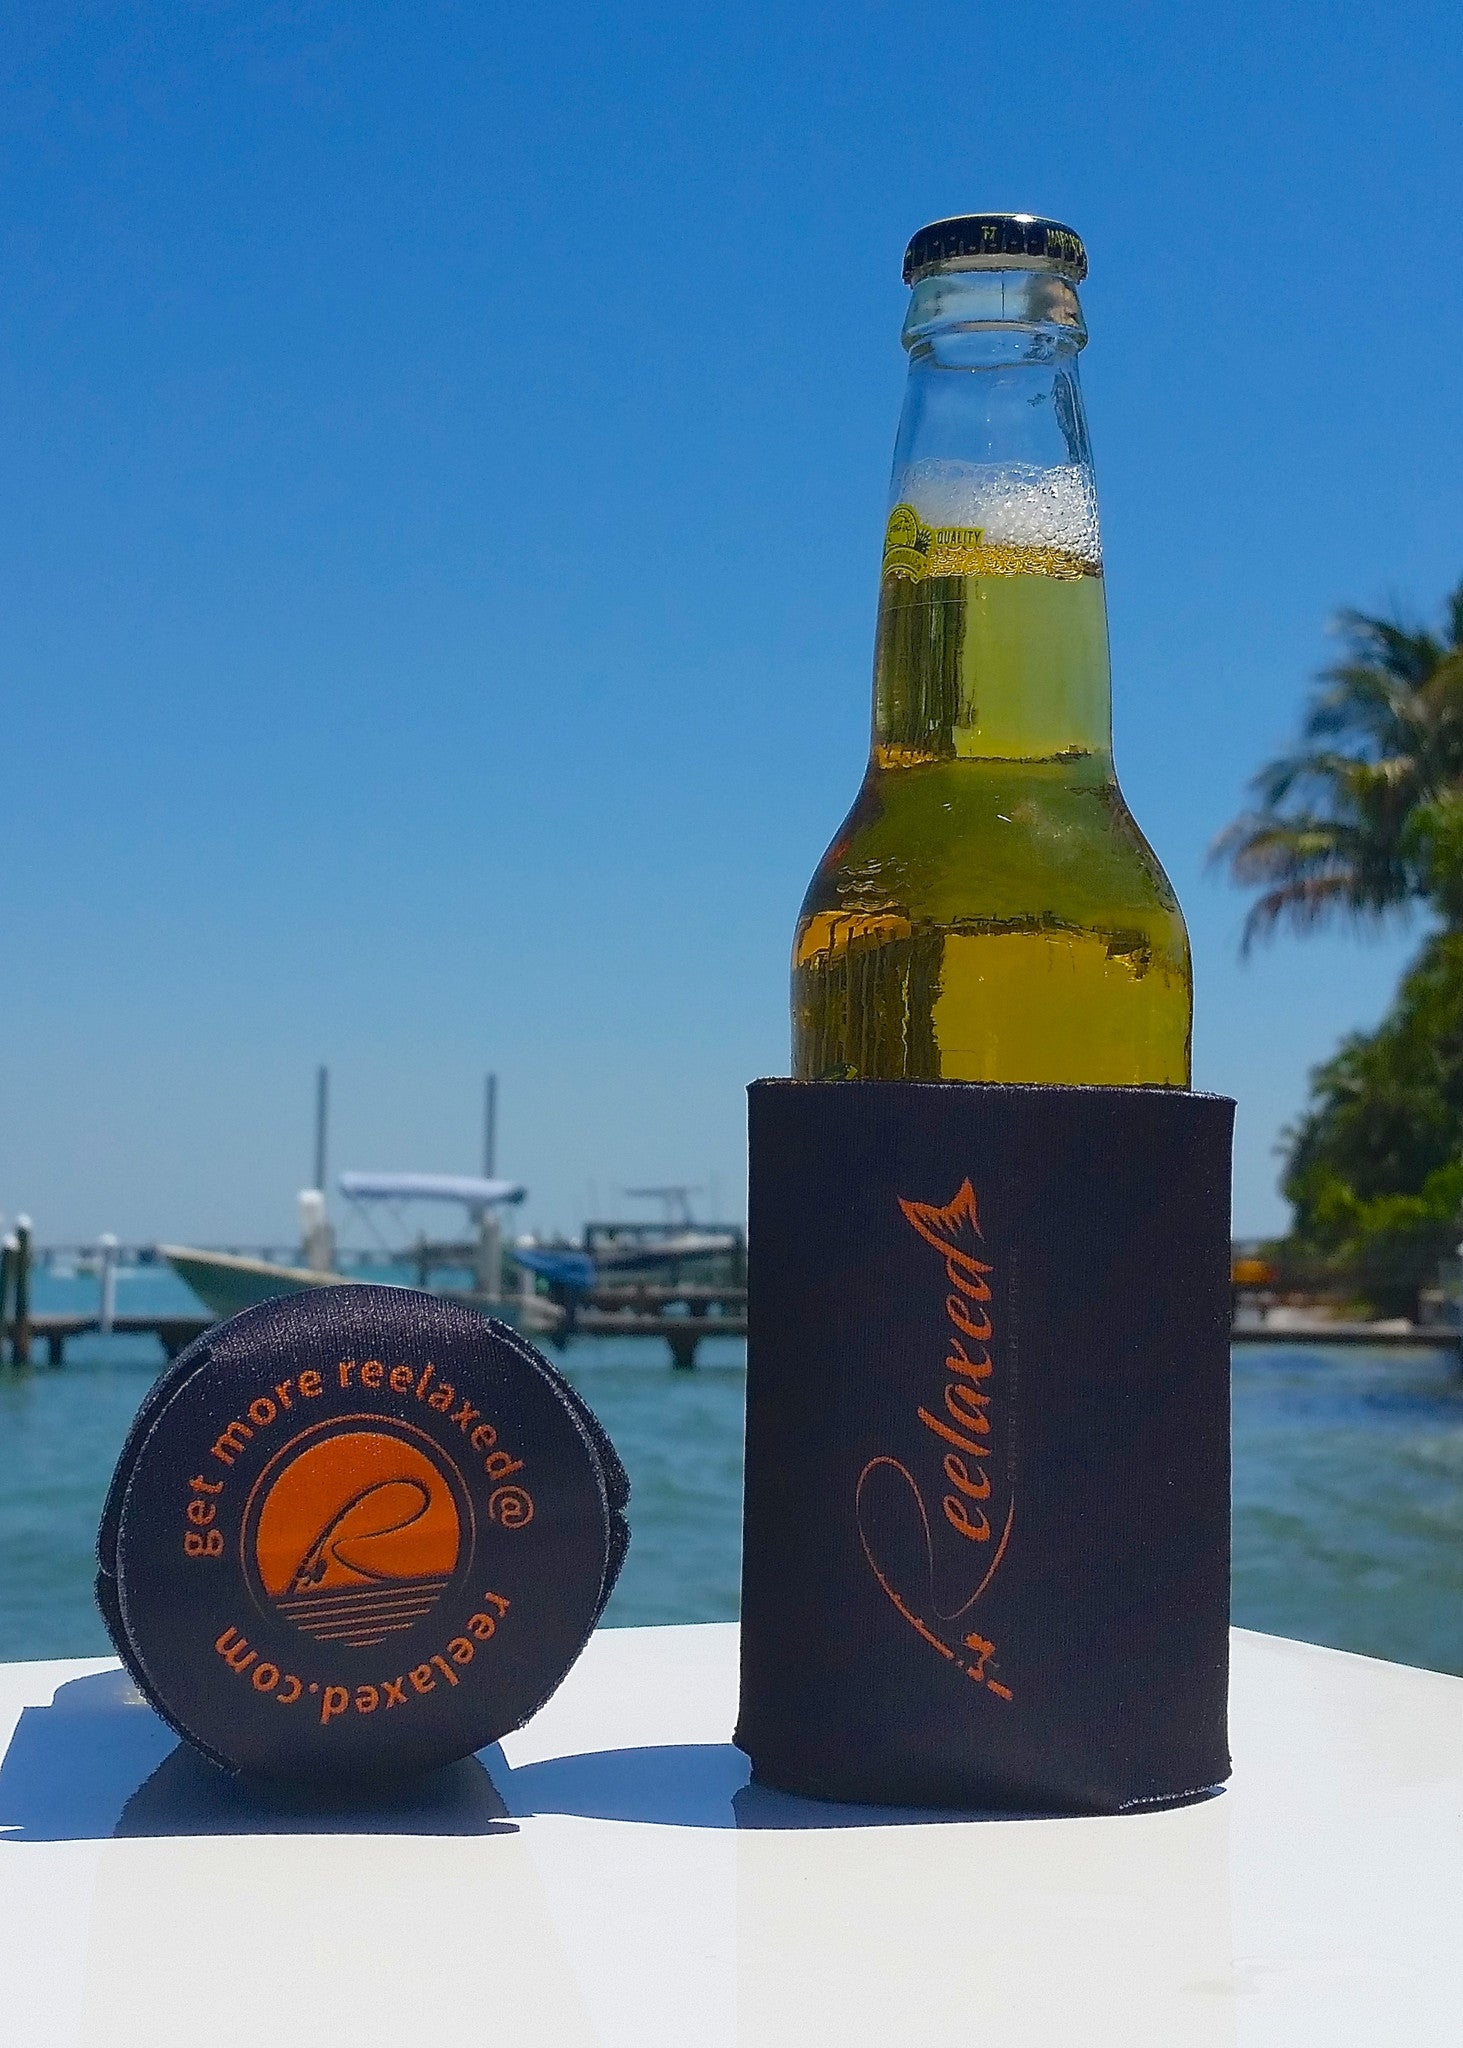 stay reelaxed maintain slow speed koozie